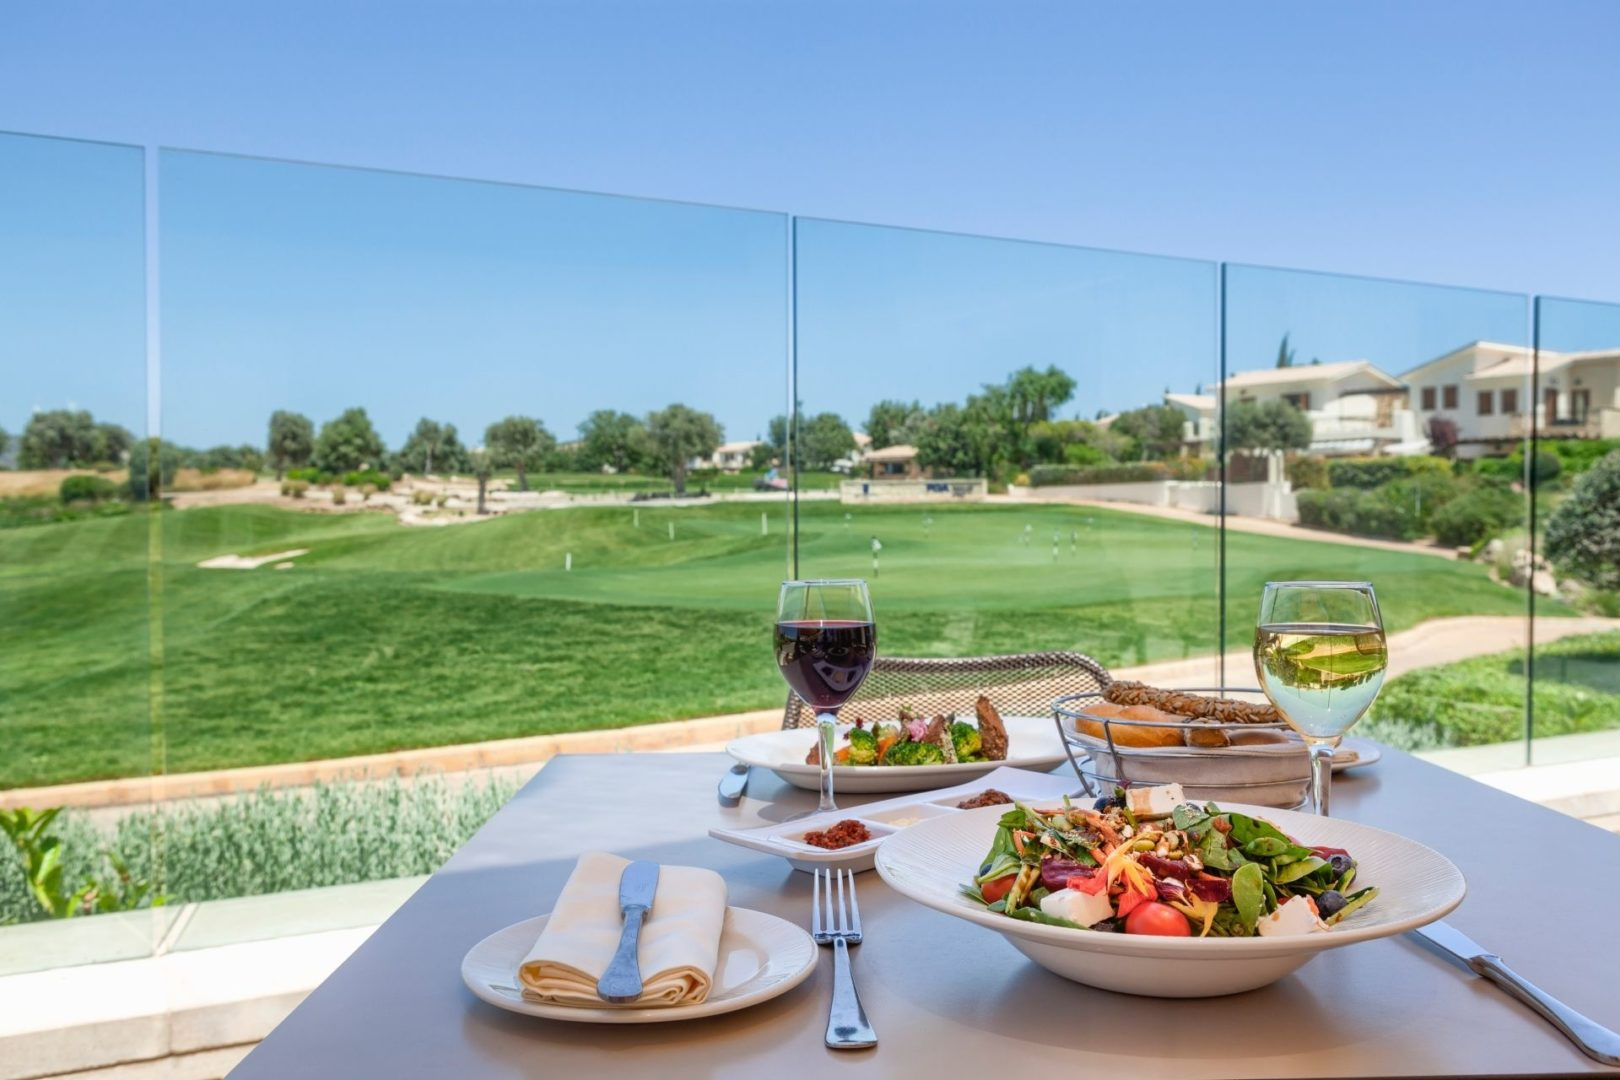 Lunch served at Golf Clubhouse